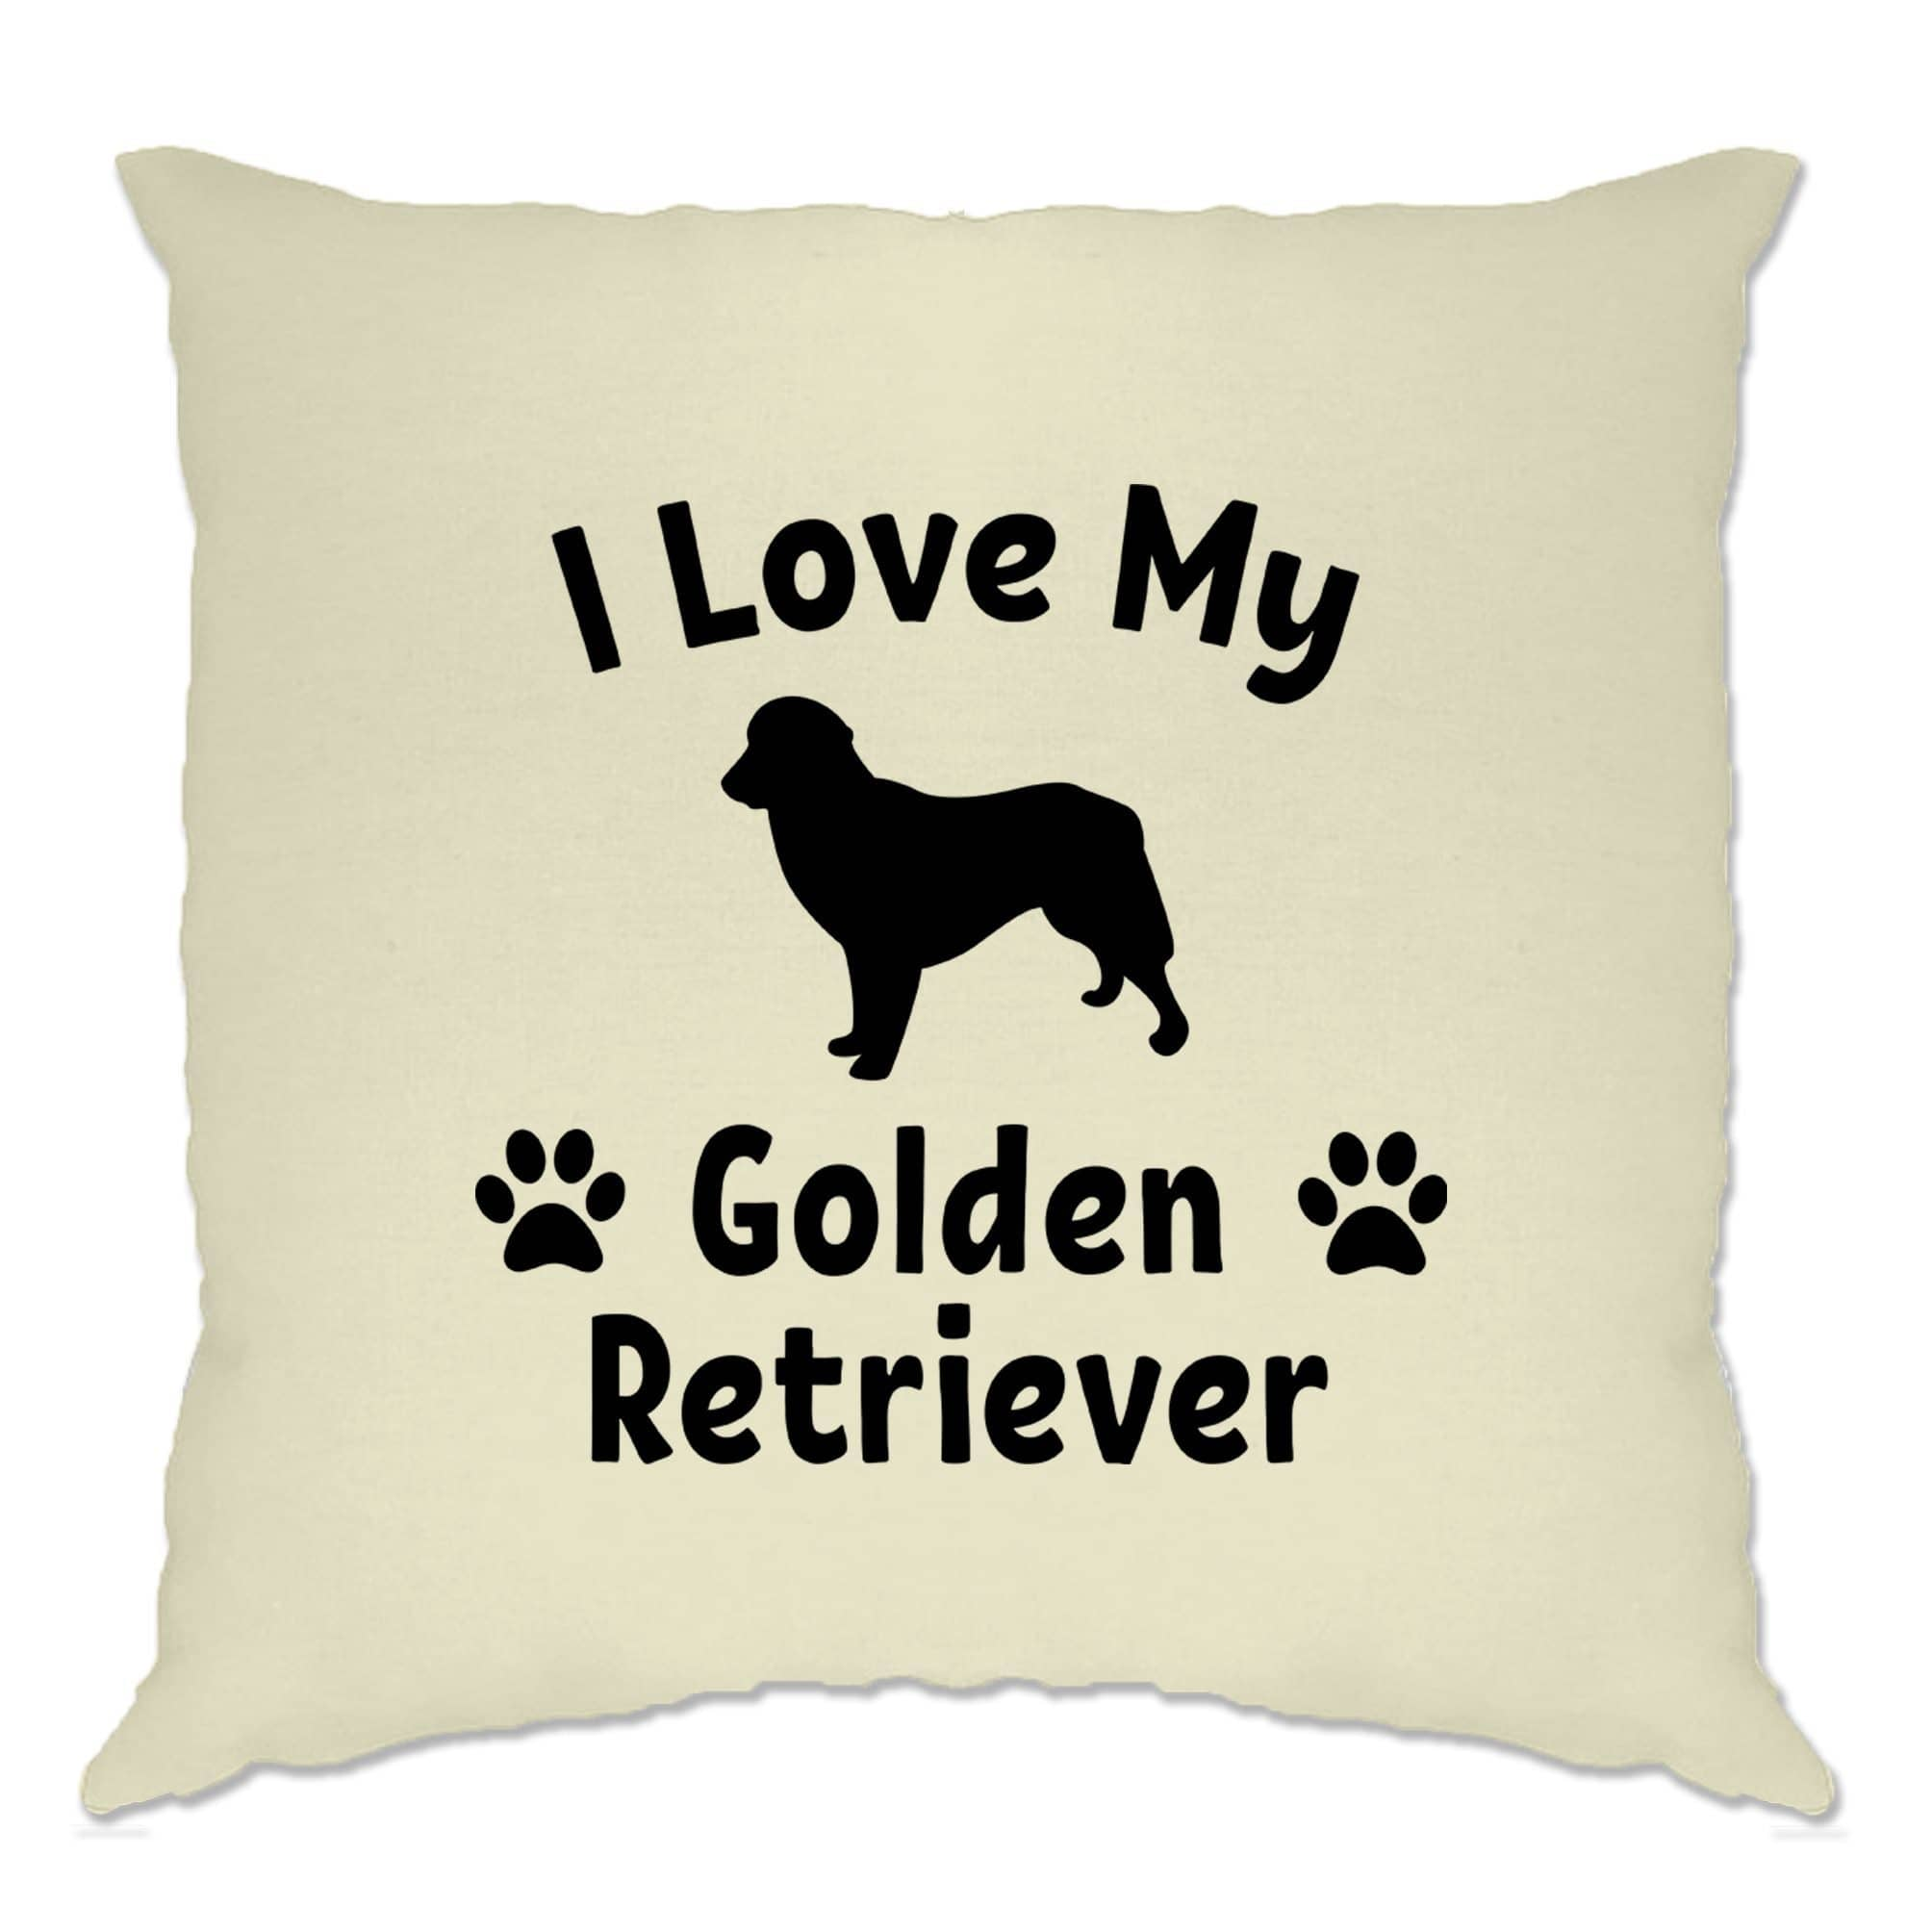 Dog Owner Cushion Cover I Love My Golden Retriever